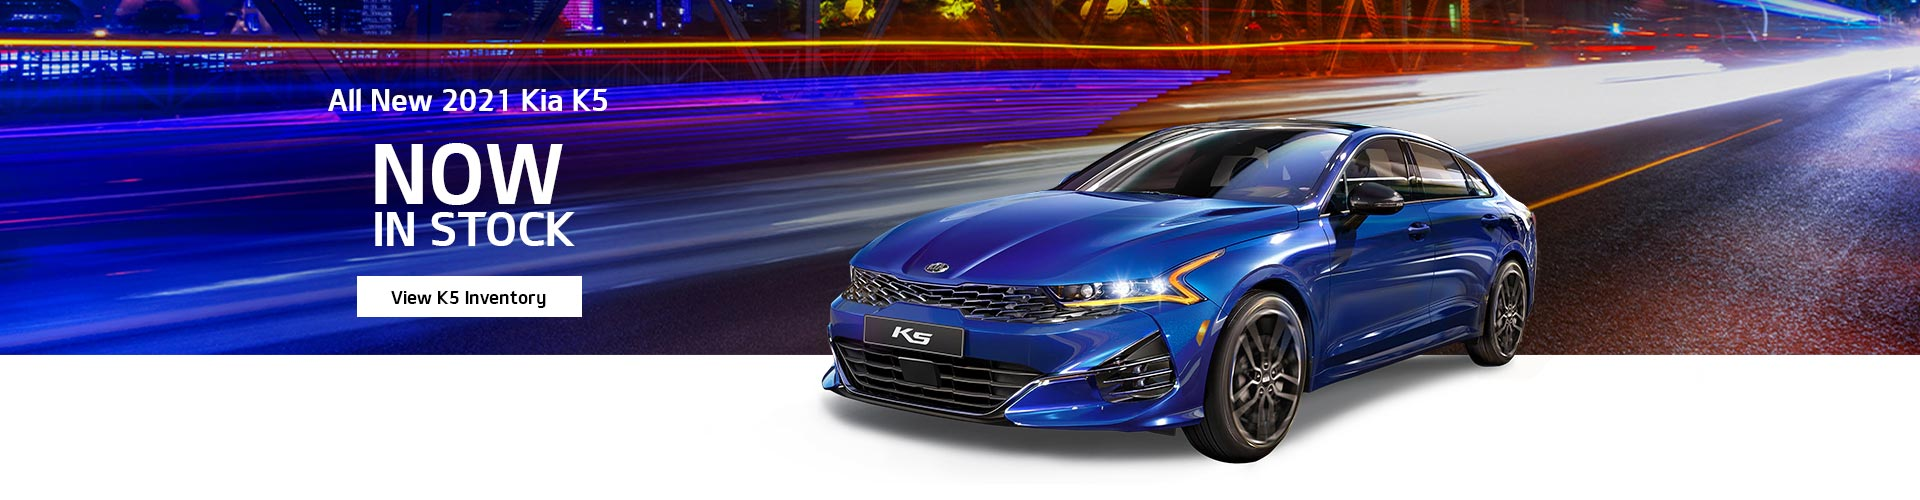 2021 Kia K5 - Instock Now at Anderson Kia